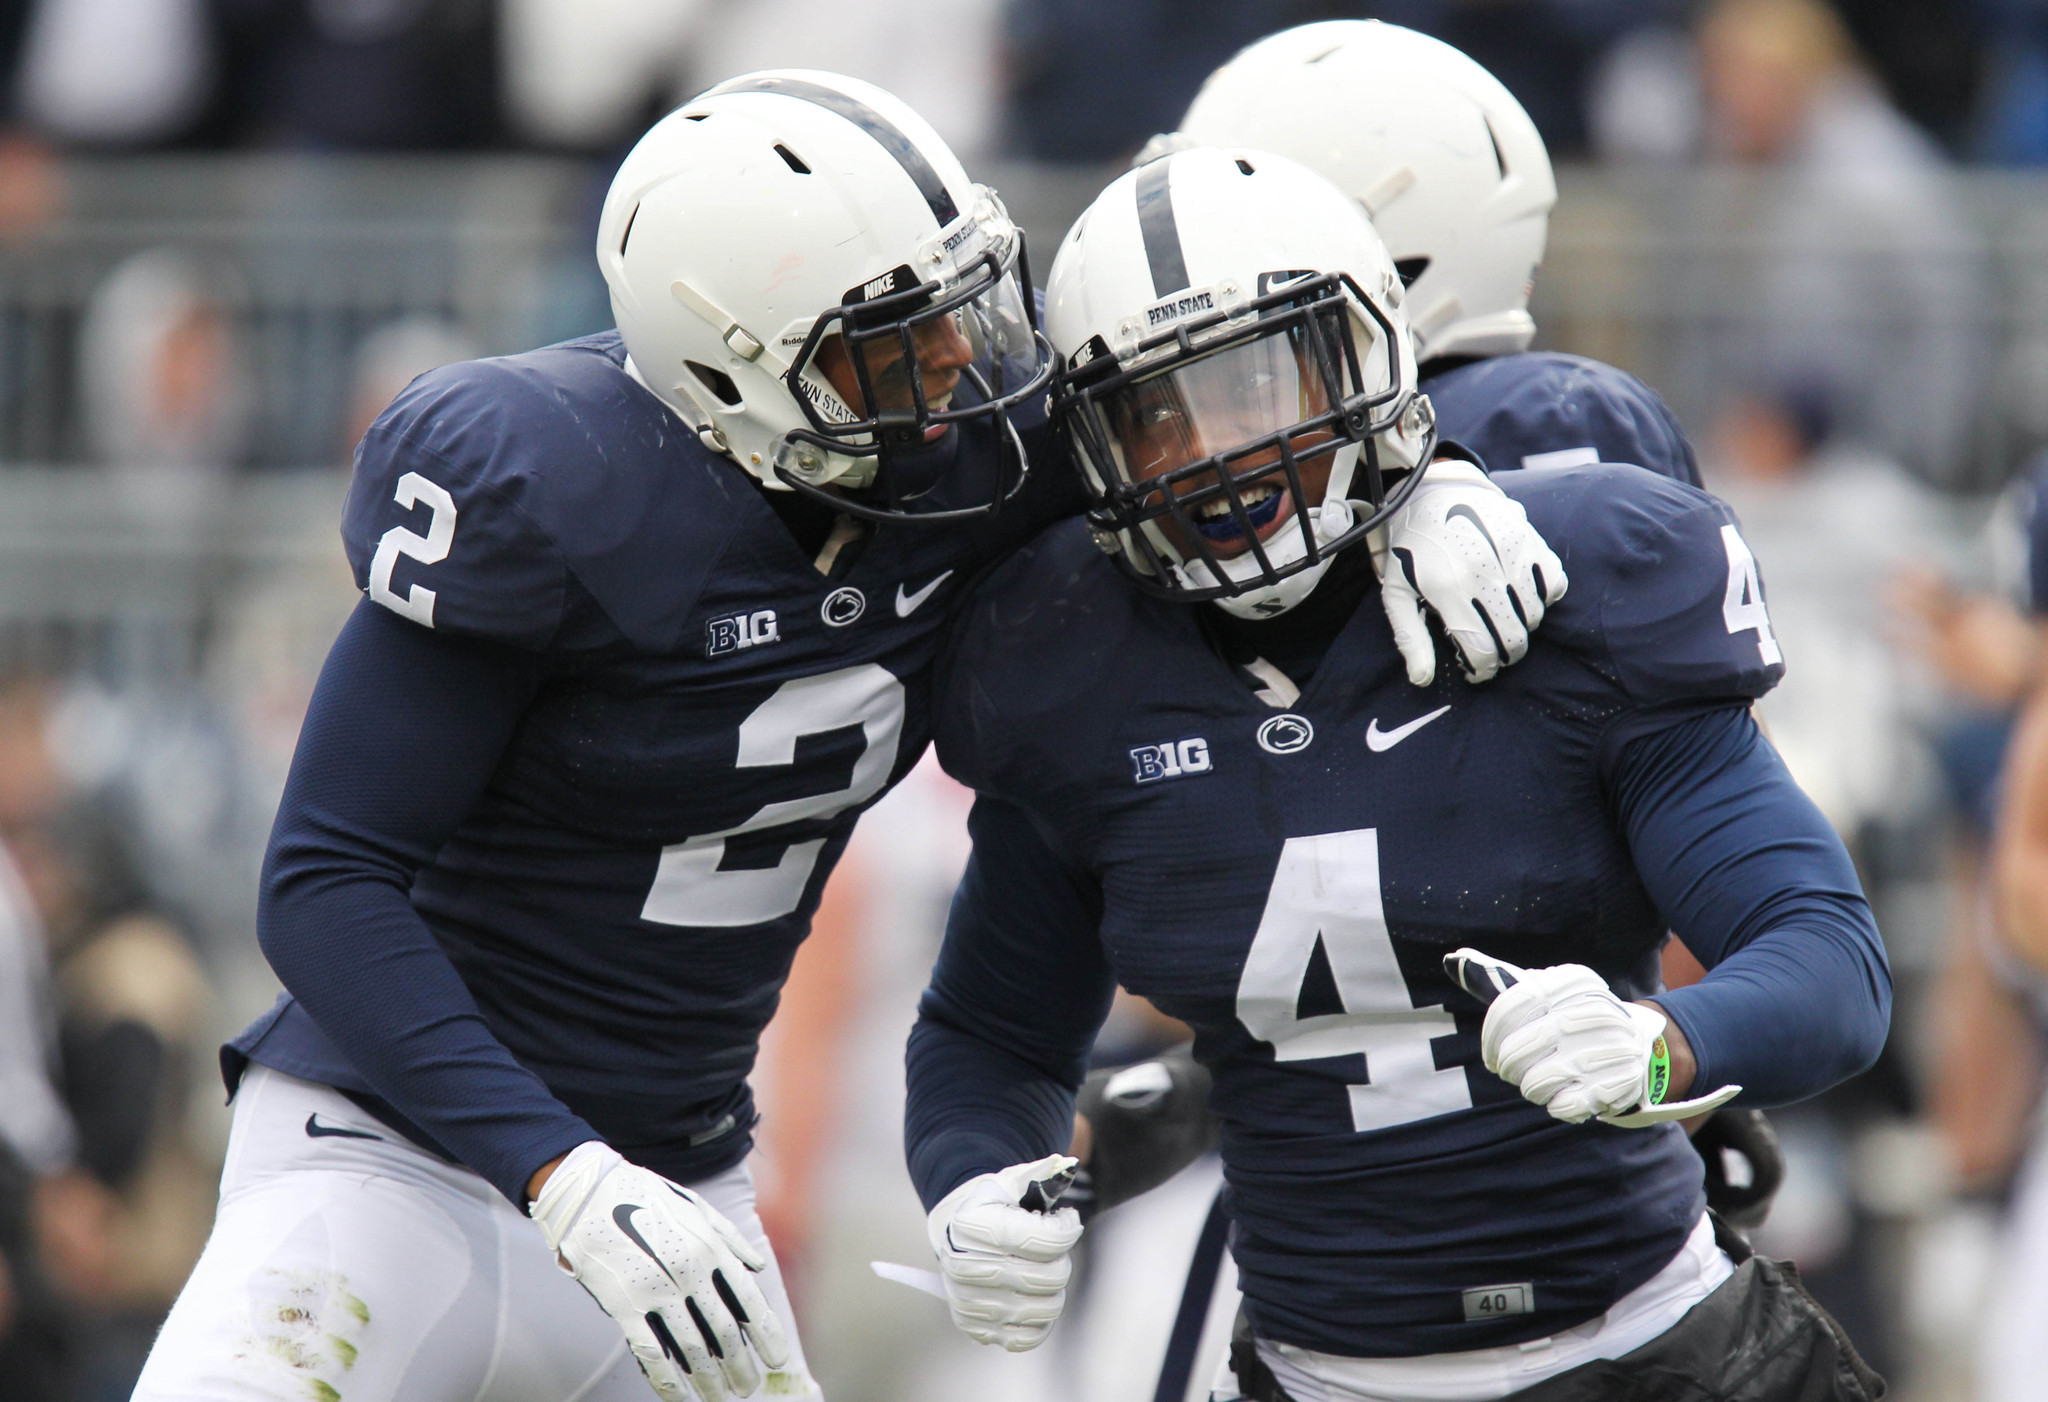 penn state football - photo #16